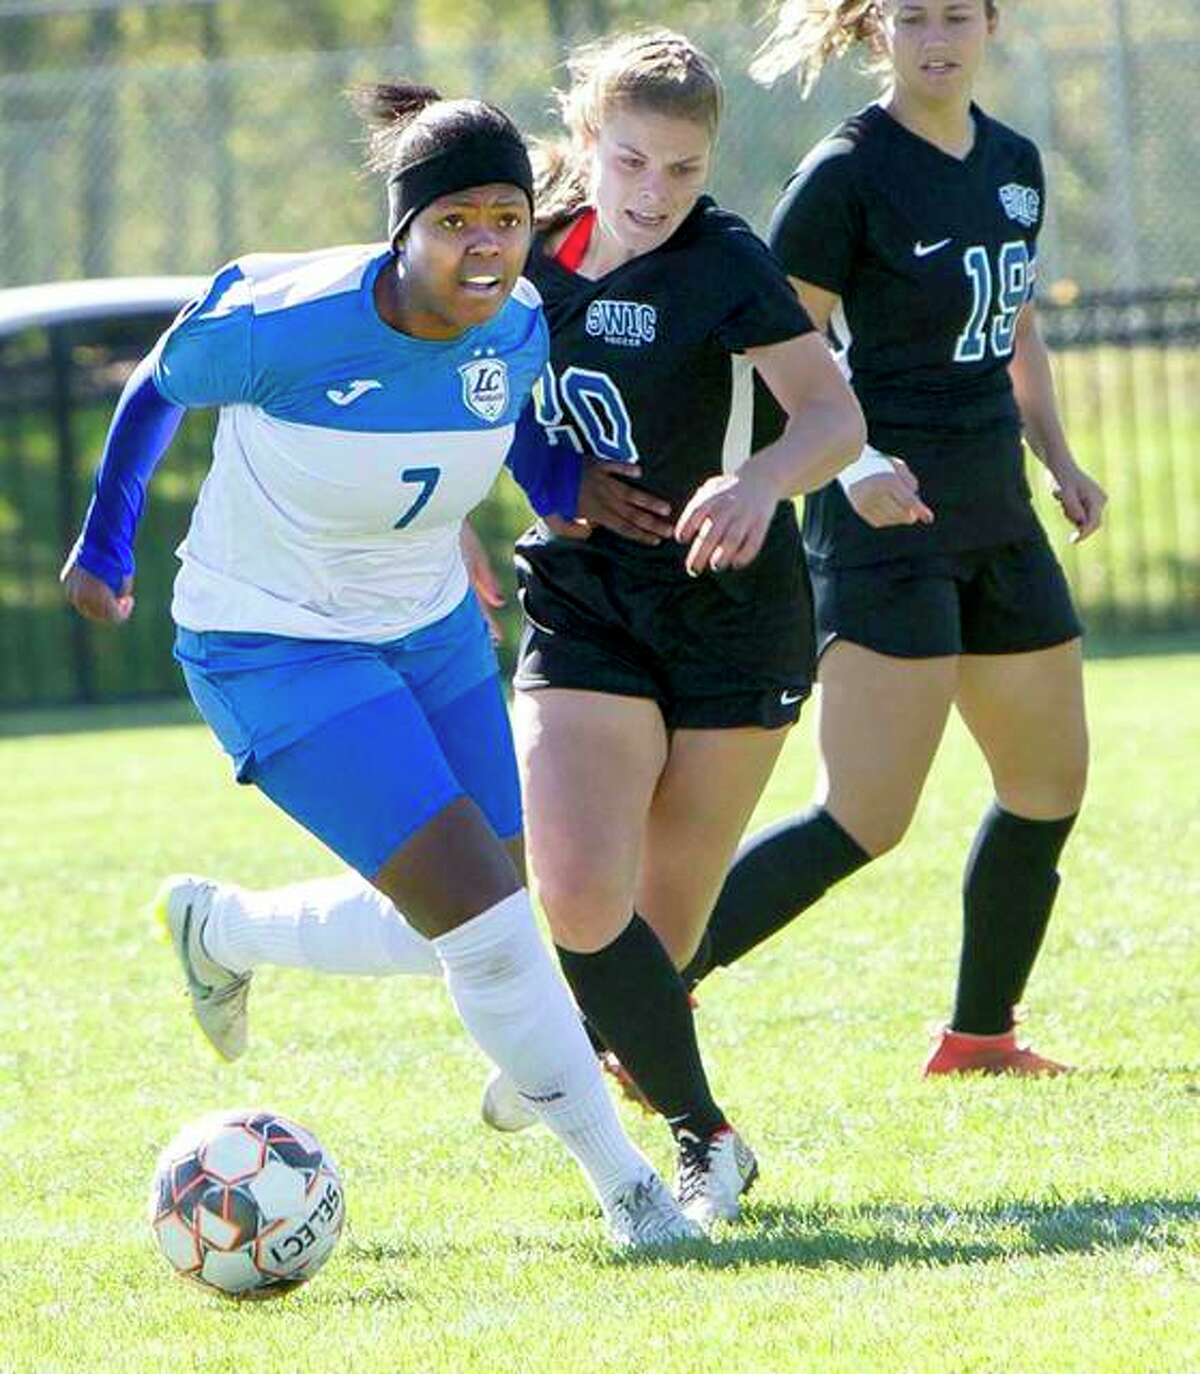 Midfielder Boitumelo Rabale, who scored 21 goals and had 29 assists last season, leads returning players as the two-time national champion Trailblazers begin official preseason practice Saturday.